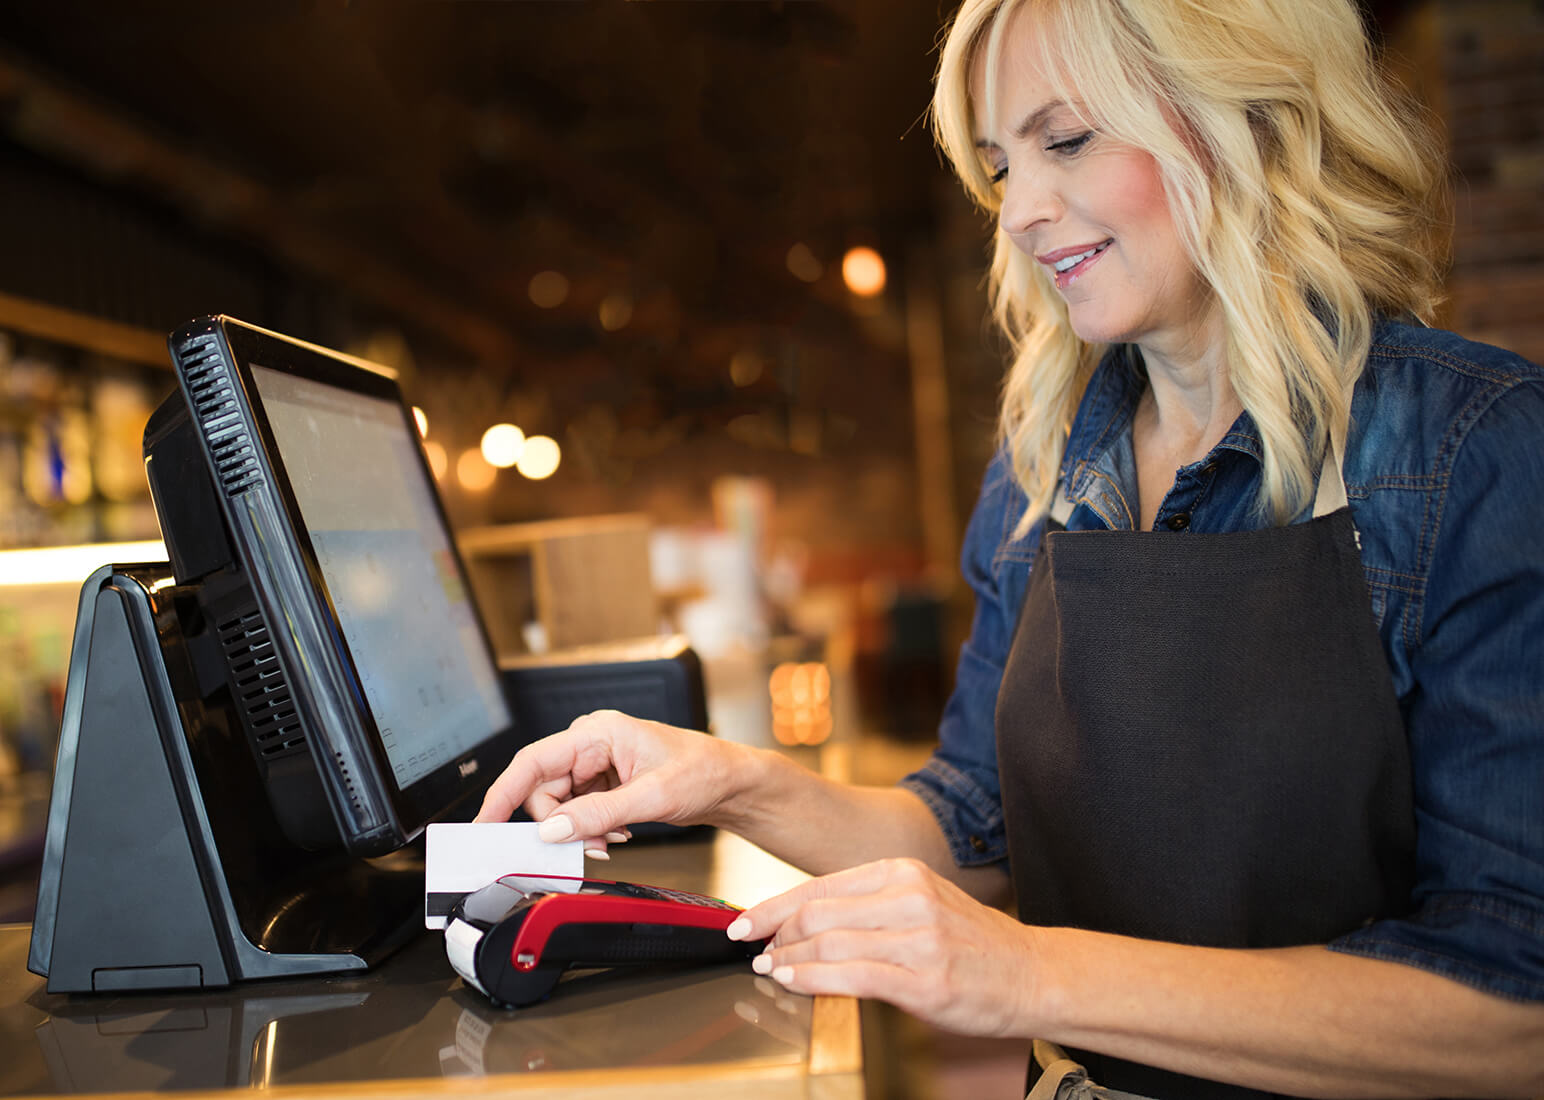 Woman processing a bankcard